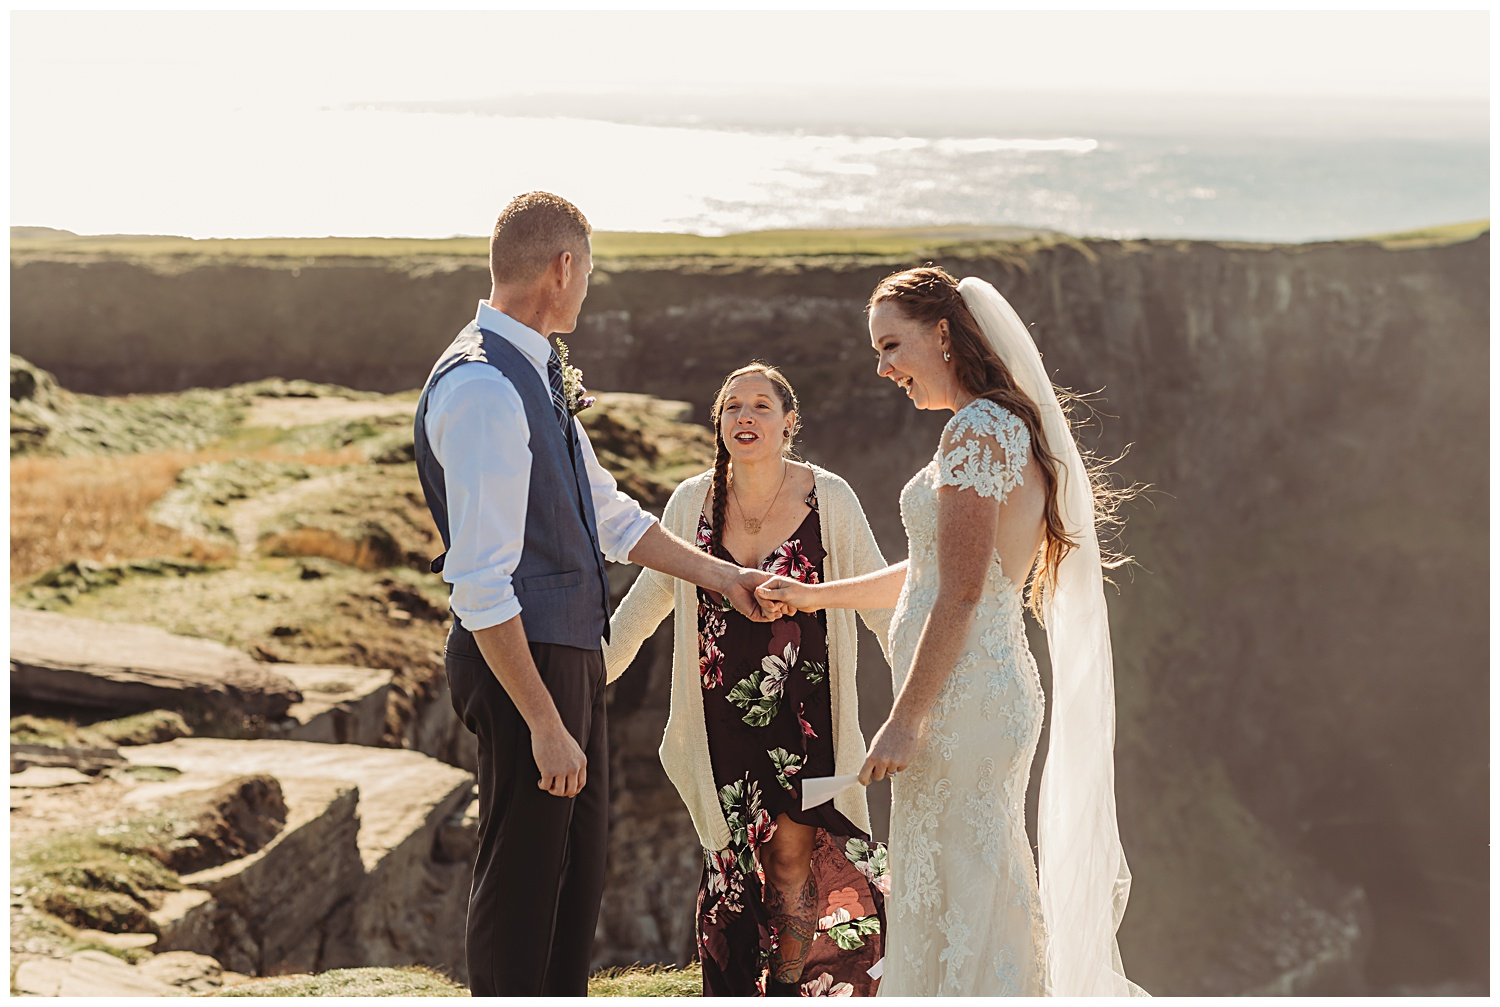 The Cliffs of Moher Destination Wedding Liscannor, County Clare, Ireland_1240.jpg